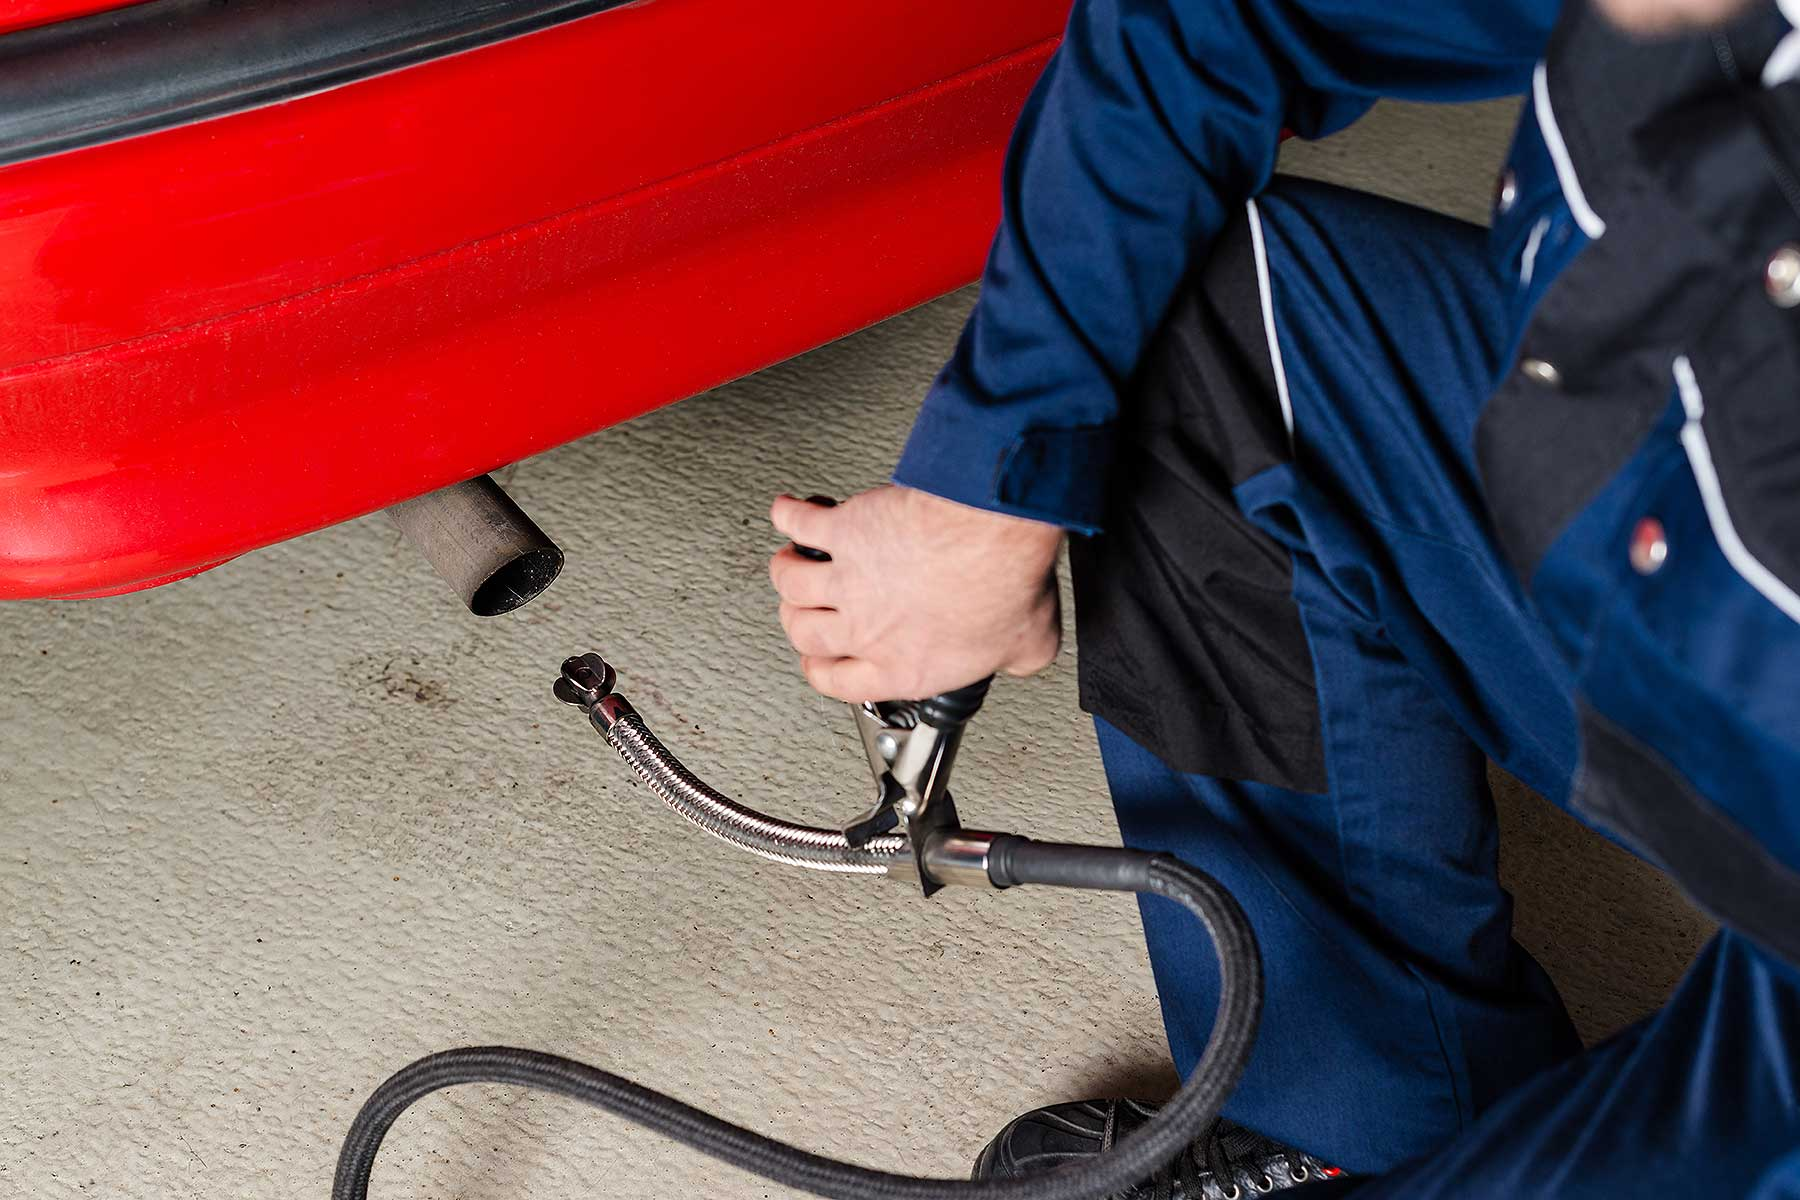 Technician conducting an MOT emissions test